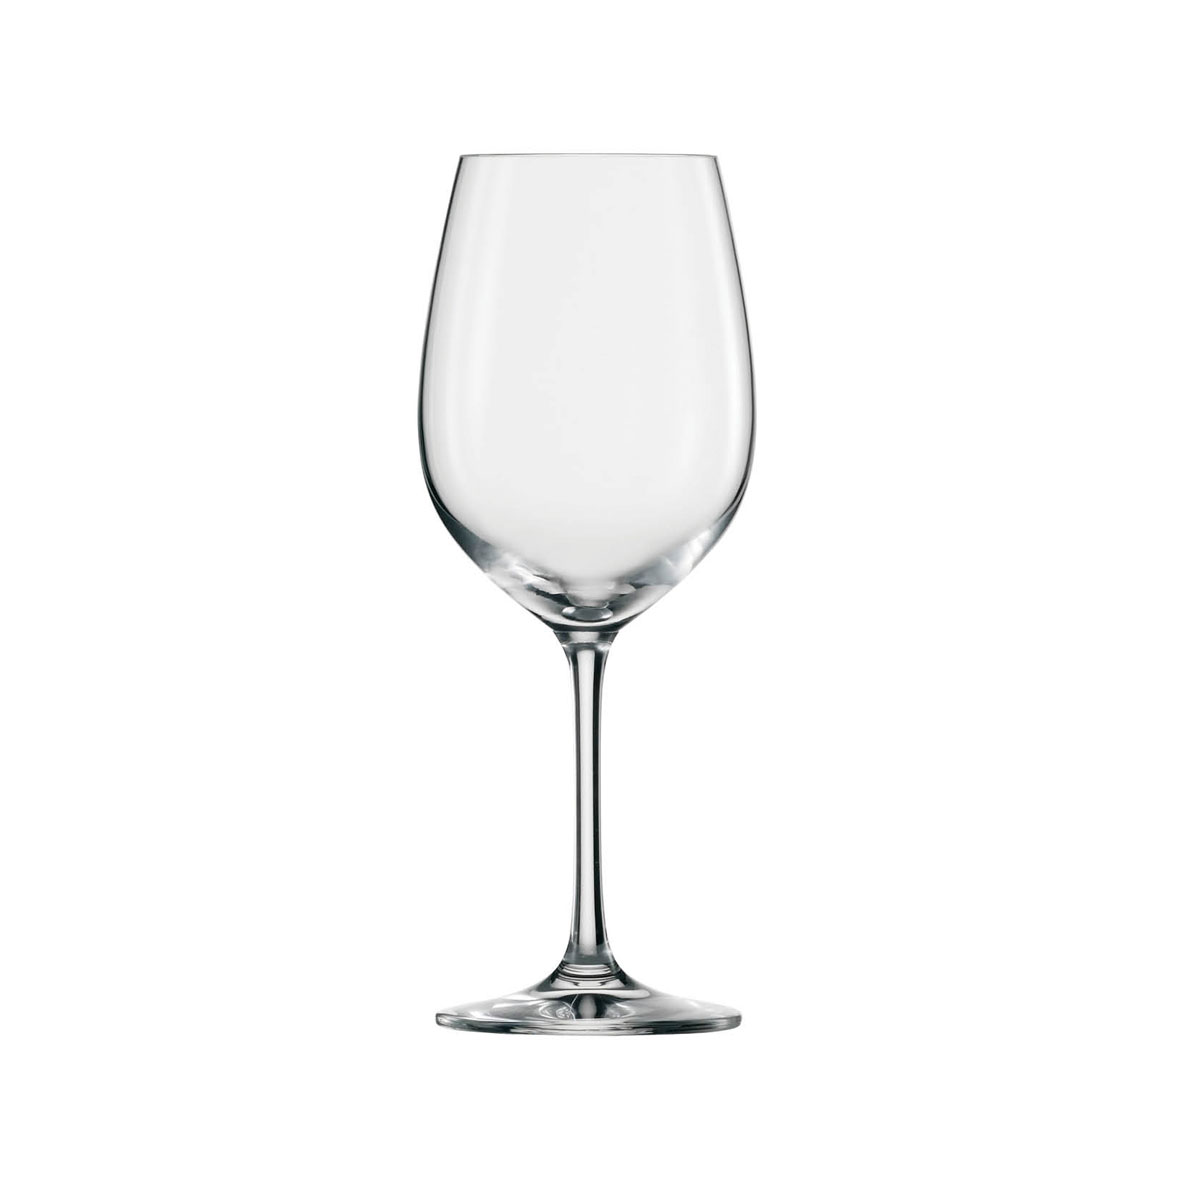 Schott Zwiesel Tritan Ivento White Wine, Single